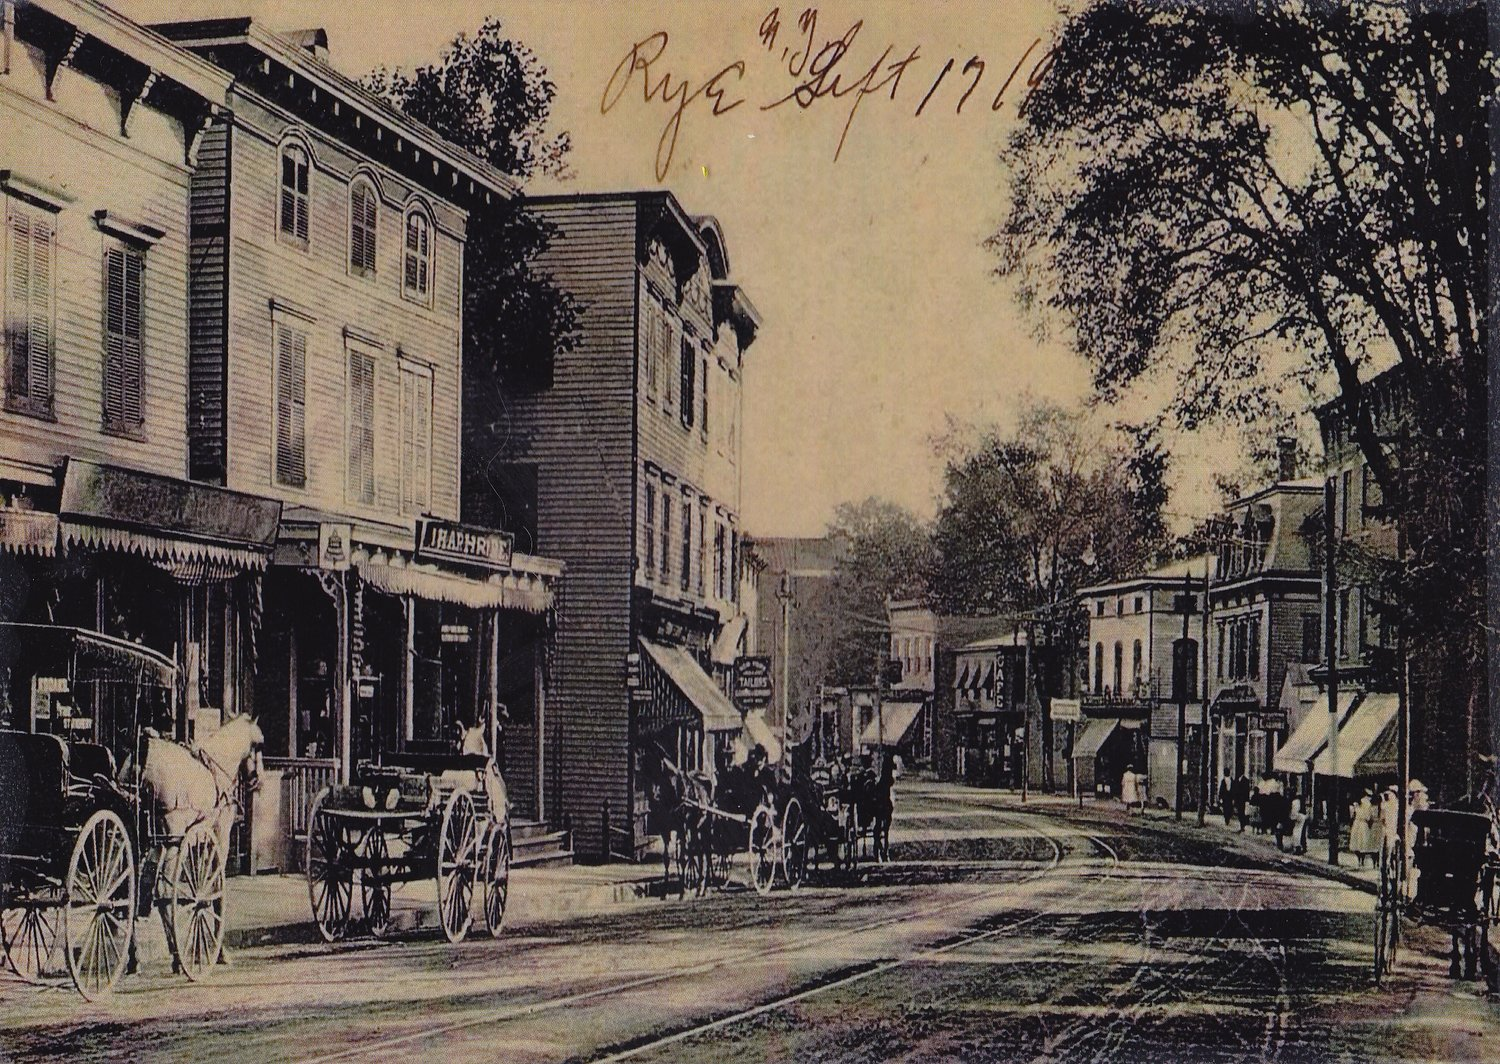 View down Purchase Street c. 1900